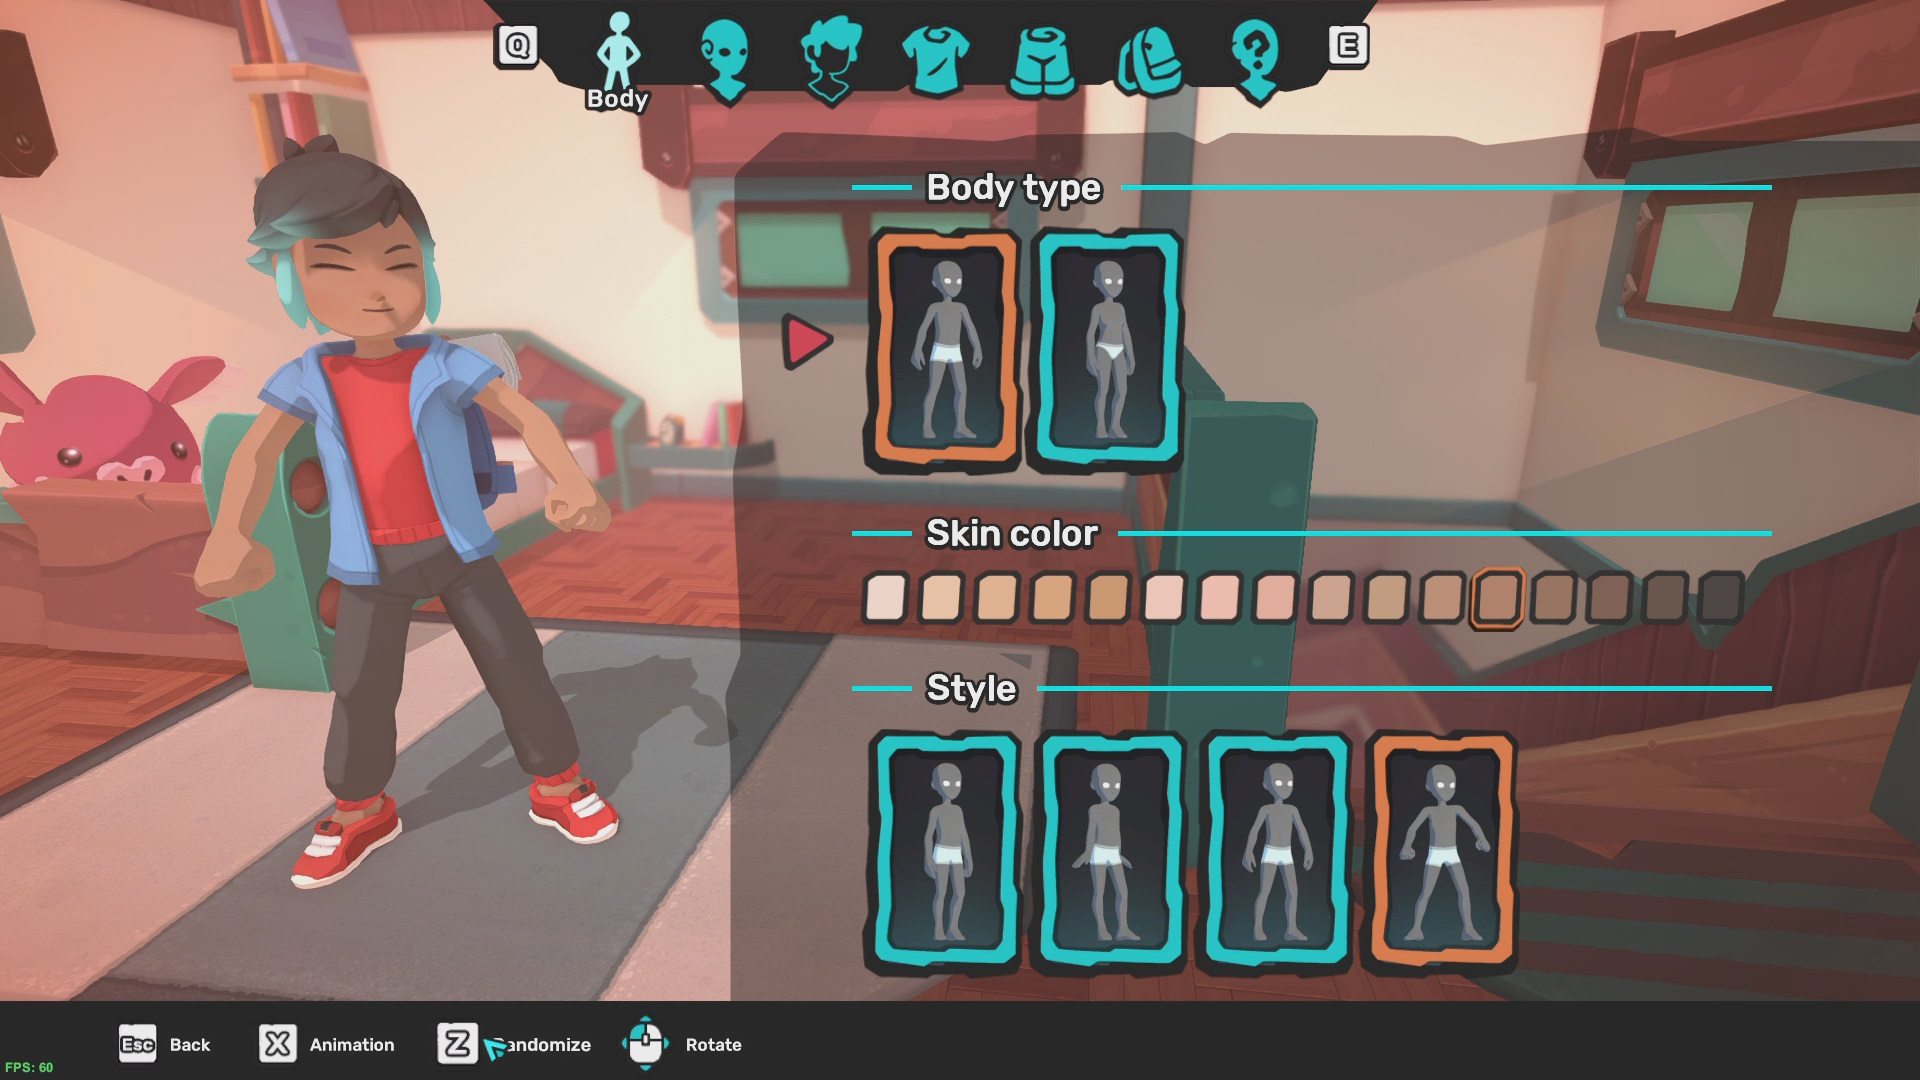 A look at the Temtem tamer body type, skin color  and walk style screen.